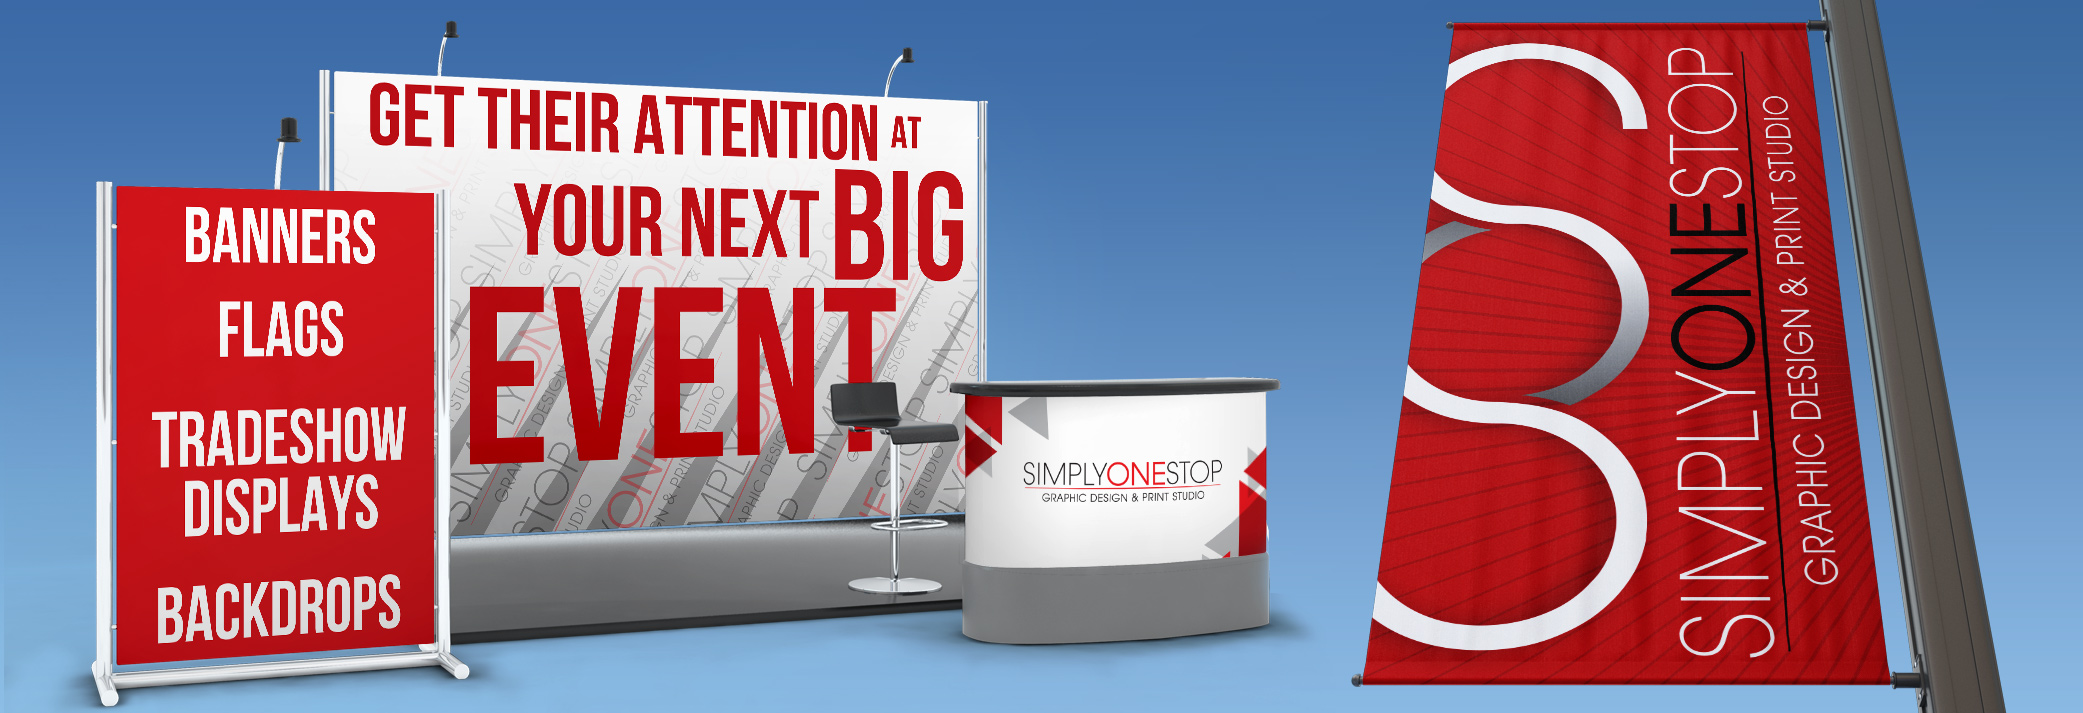 banners and displays for your next big event